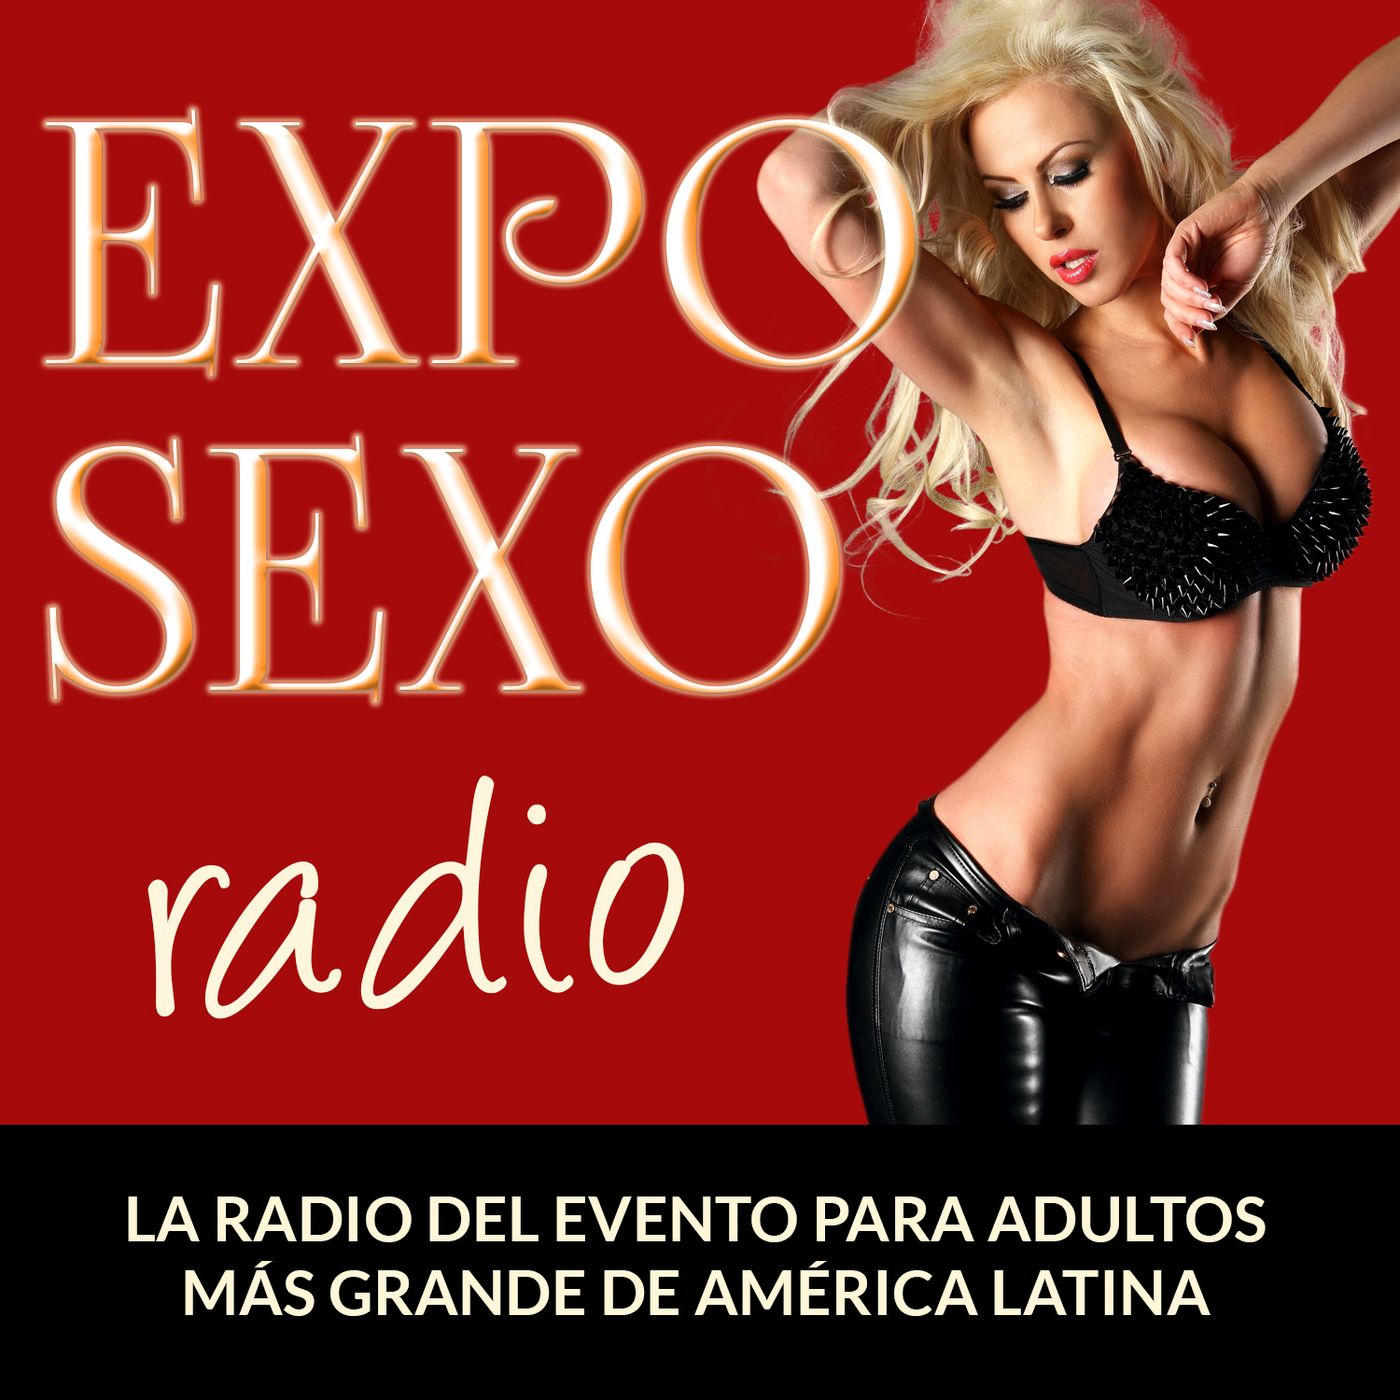 EXPO SEXO RADIO